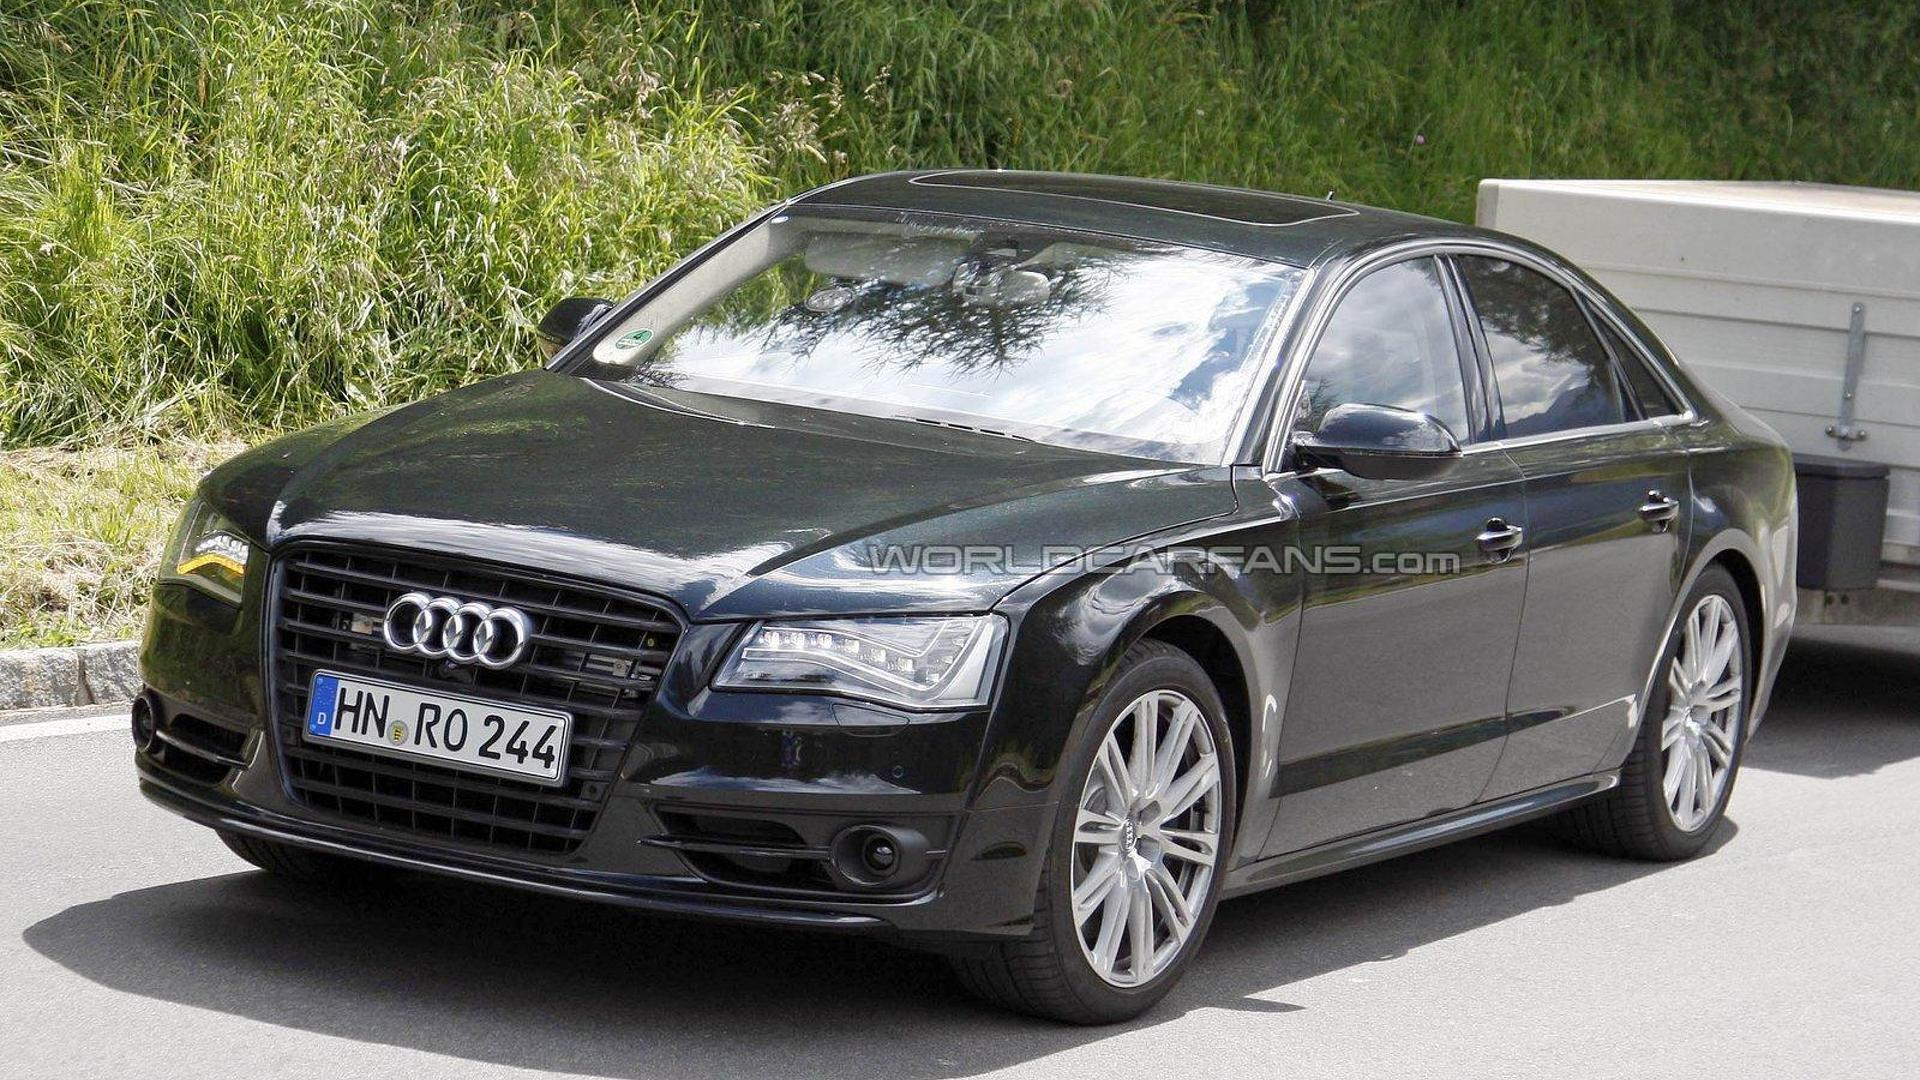 New Audi S8 Spied Testing on the Ring with No Camo